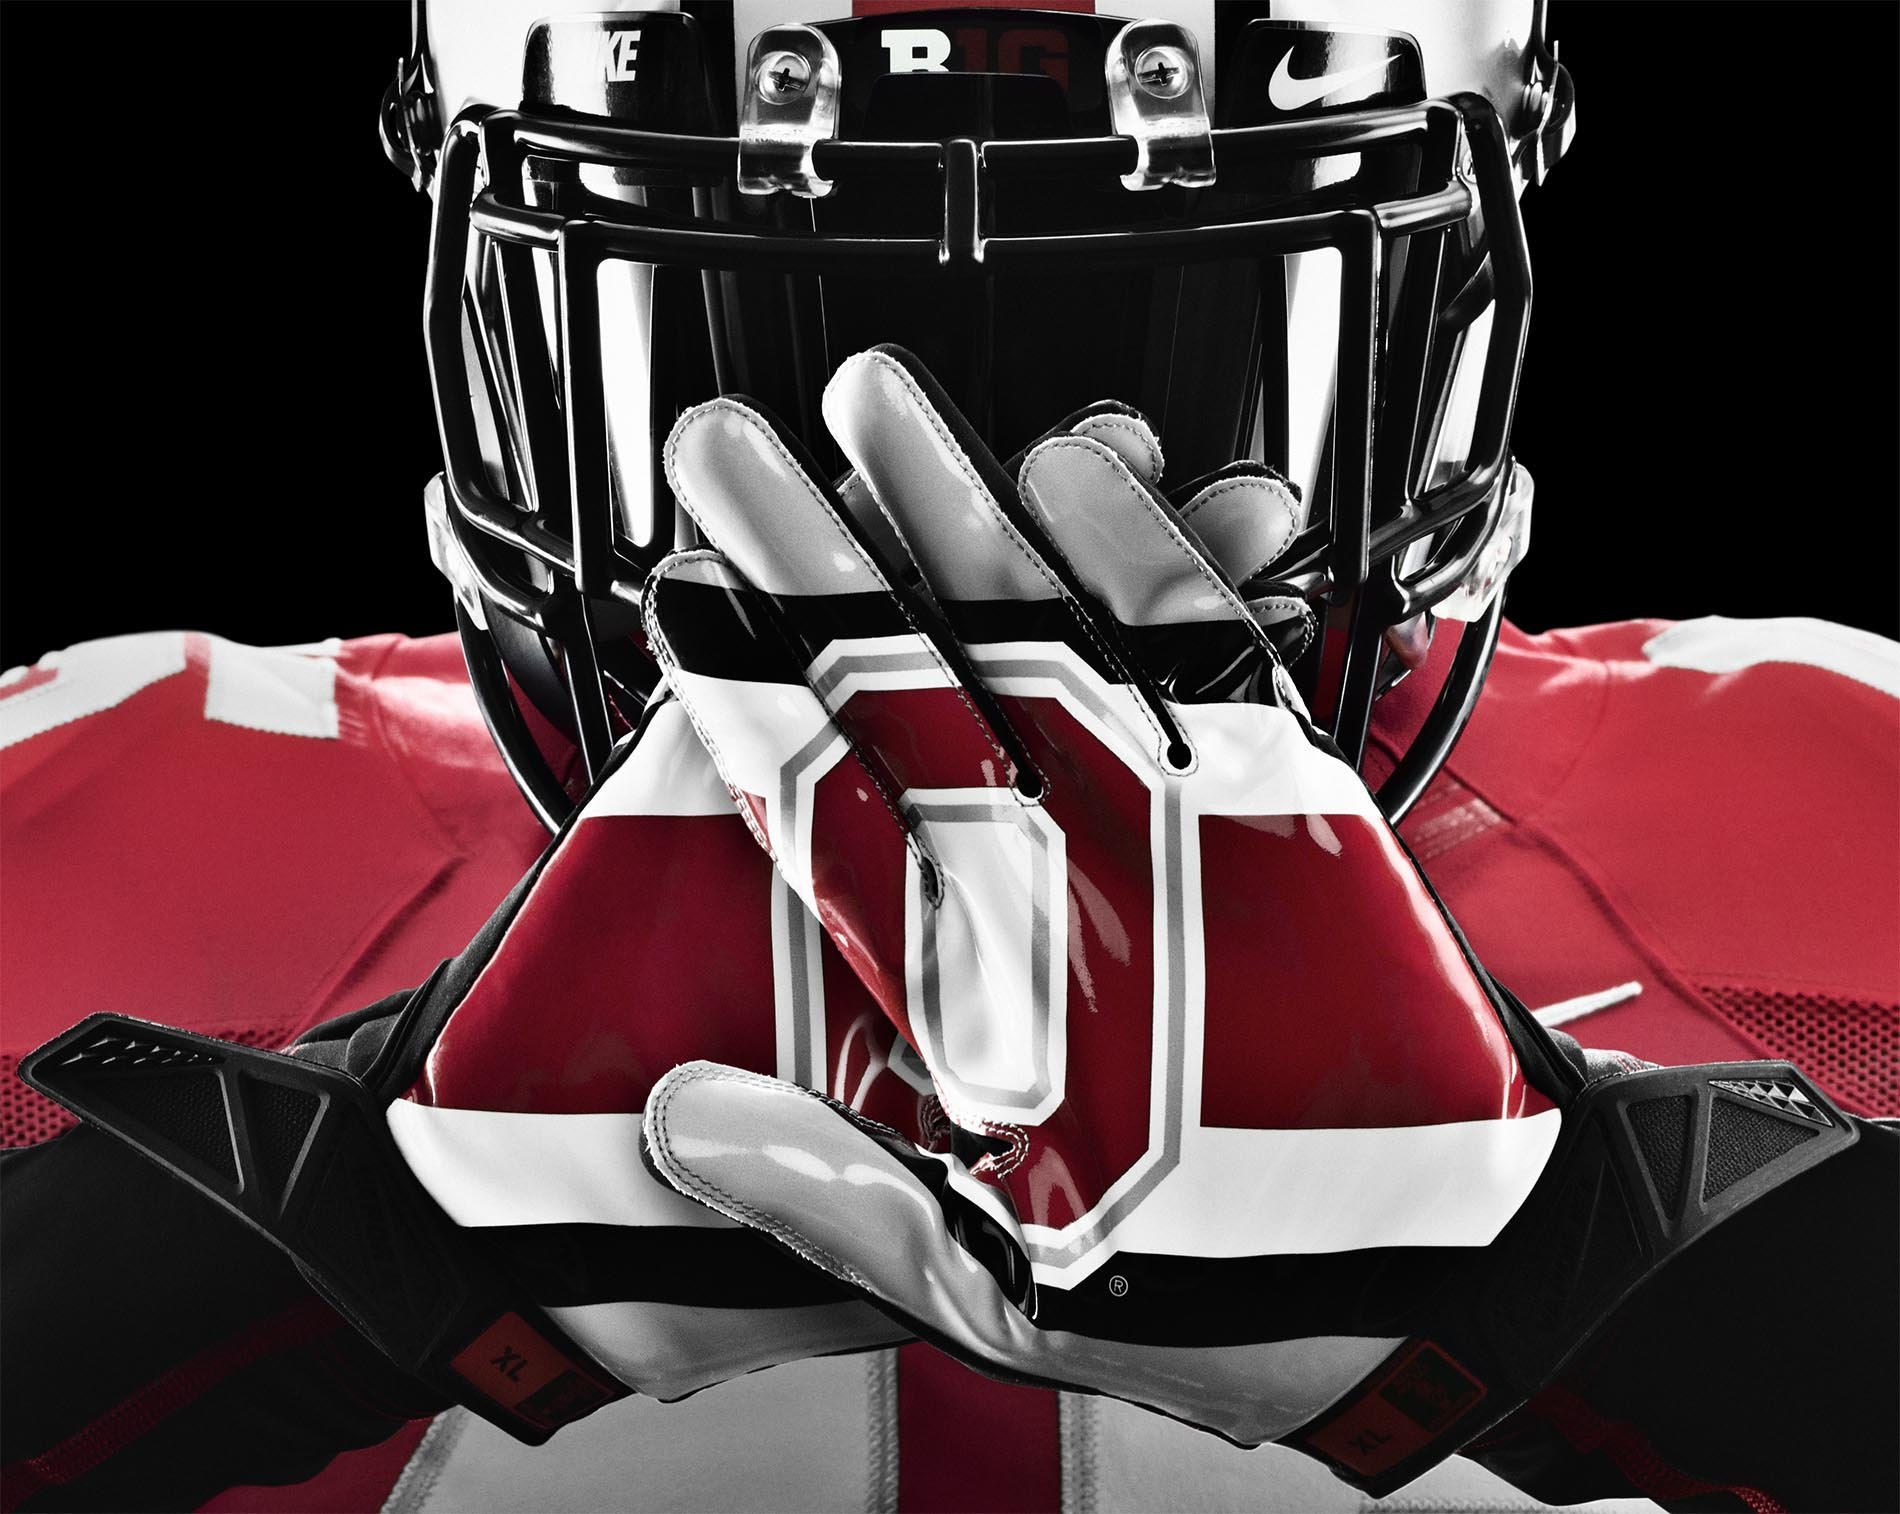 OHIO STATE BUCKEYES college football poster wallpaper background